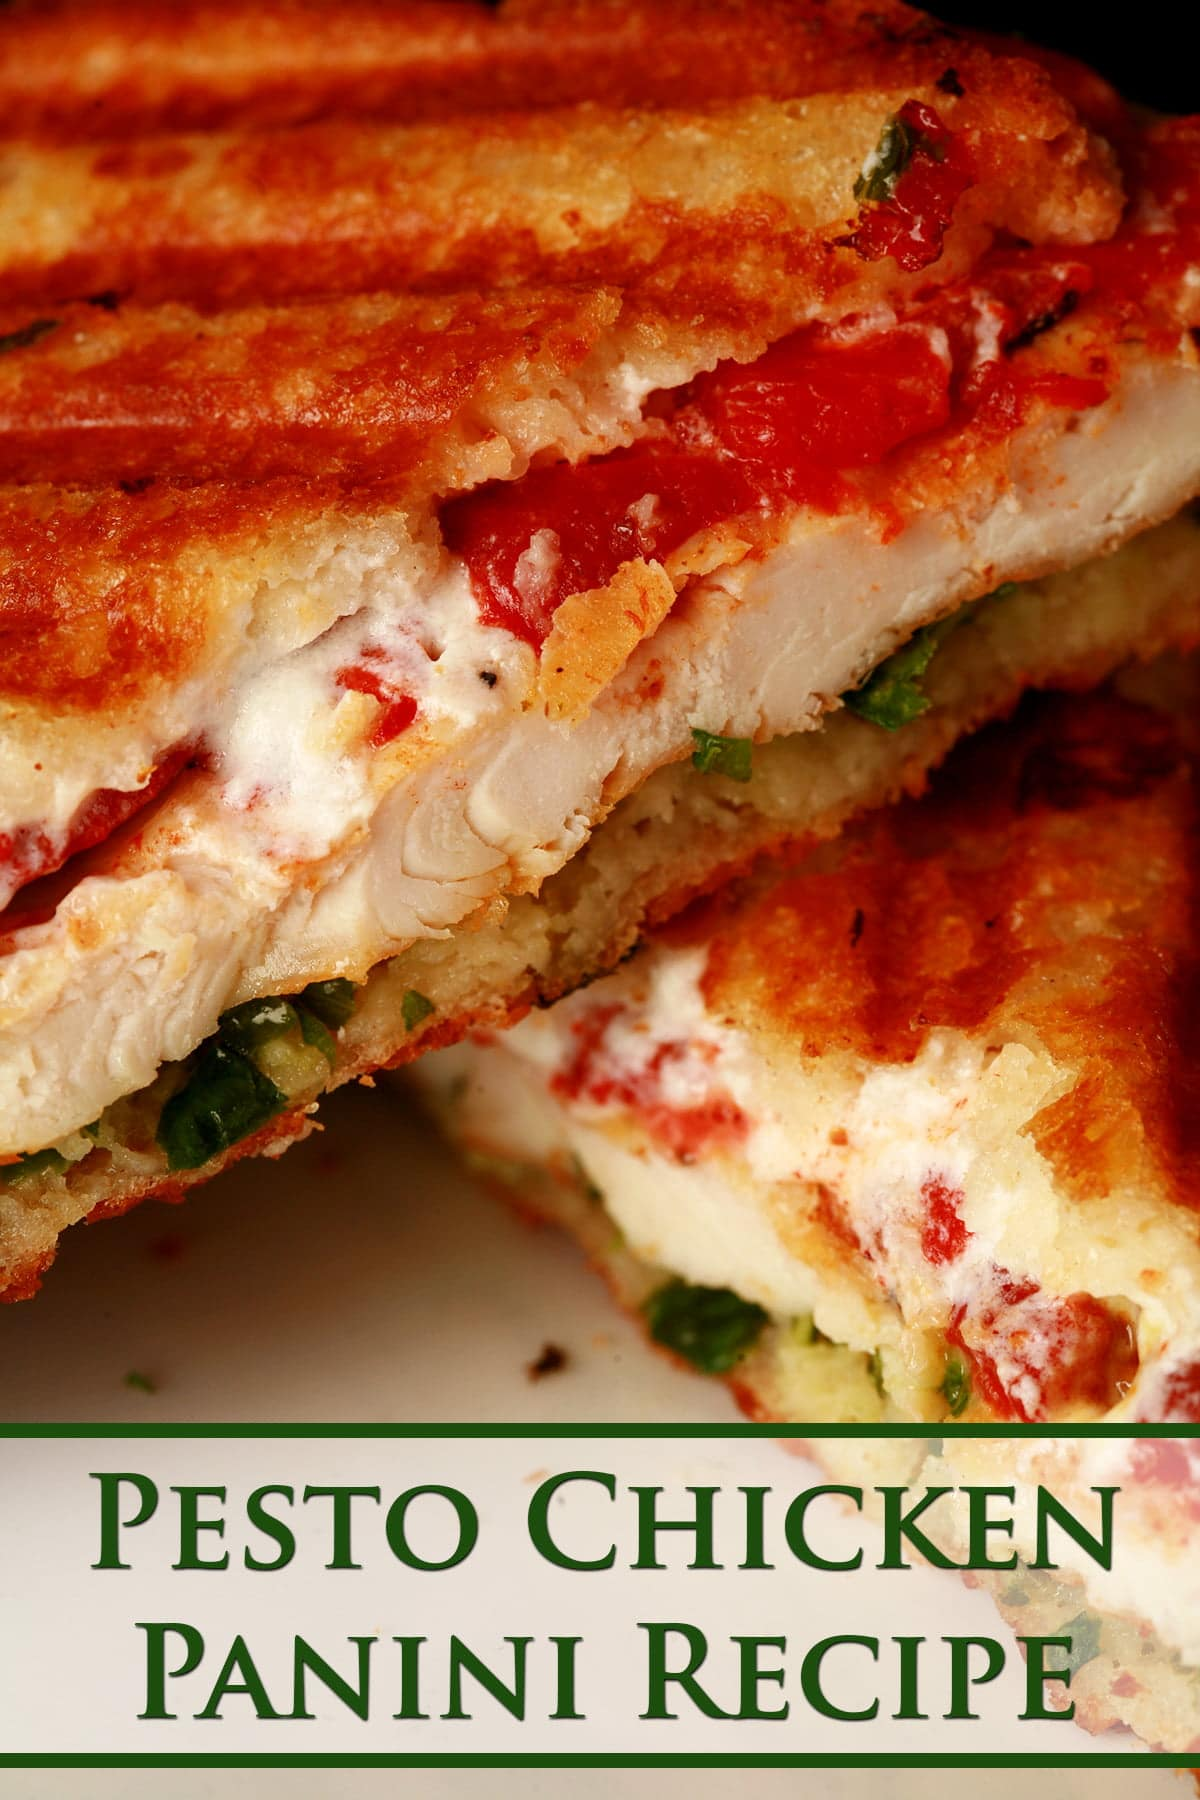 Close up view of a chicken panini sandwich. It's sliced in half, and roasted red pepper, chicken breast, goat cheese, and pesto layers are visible.